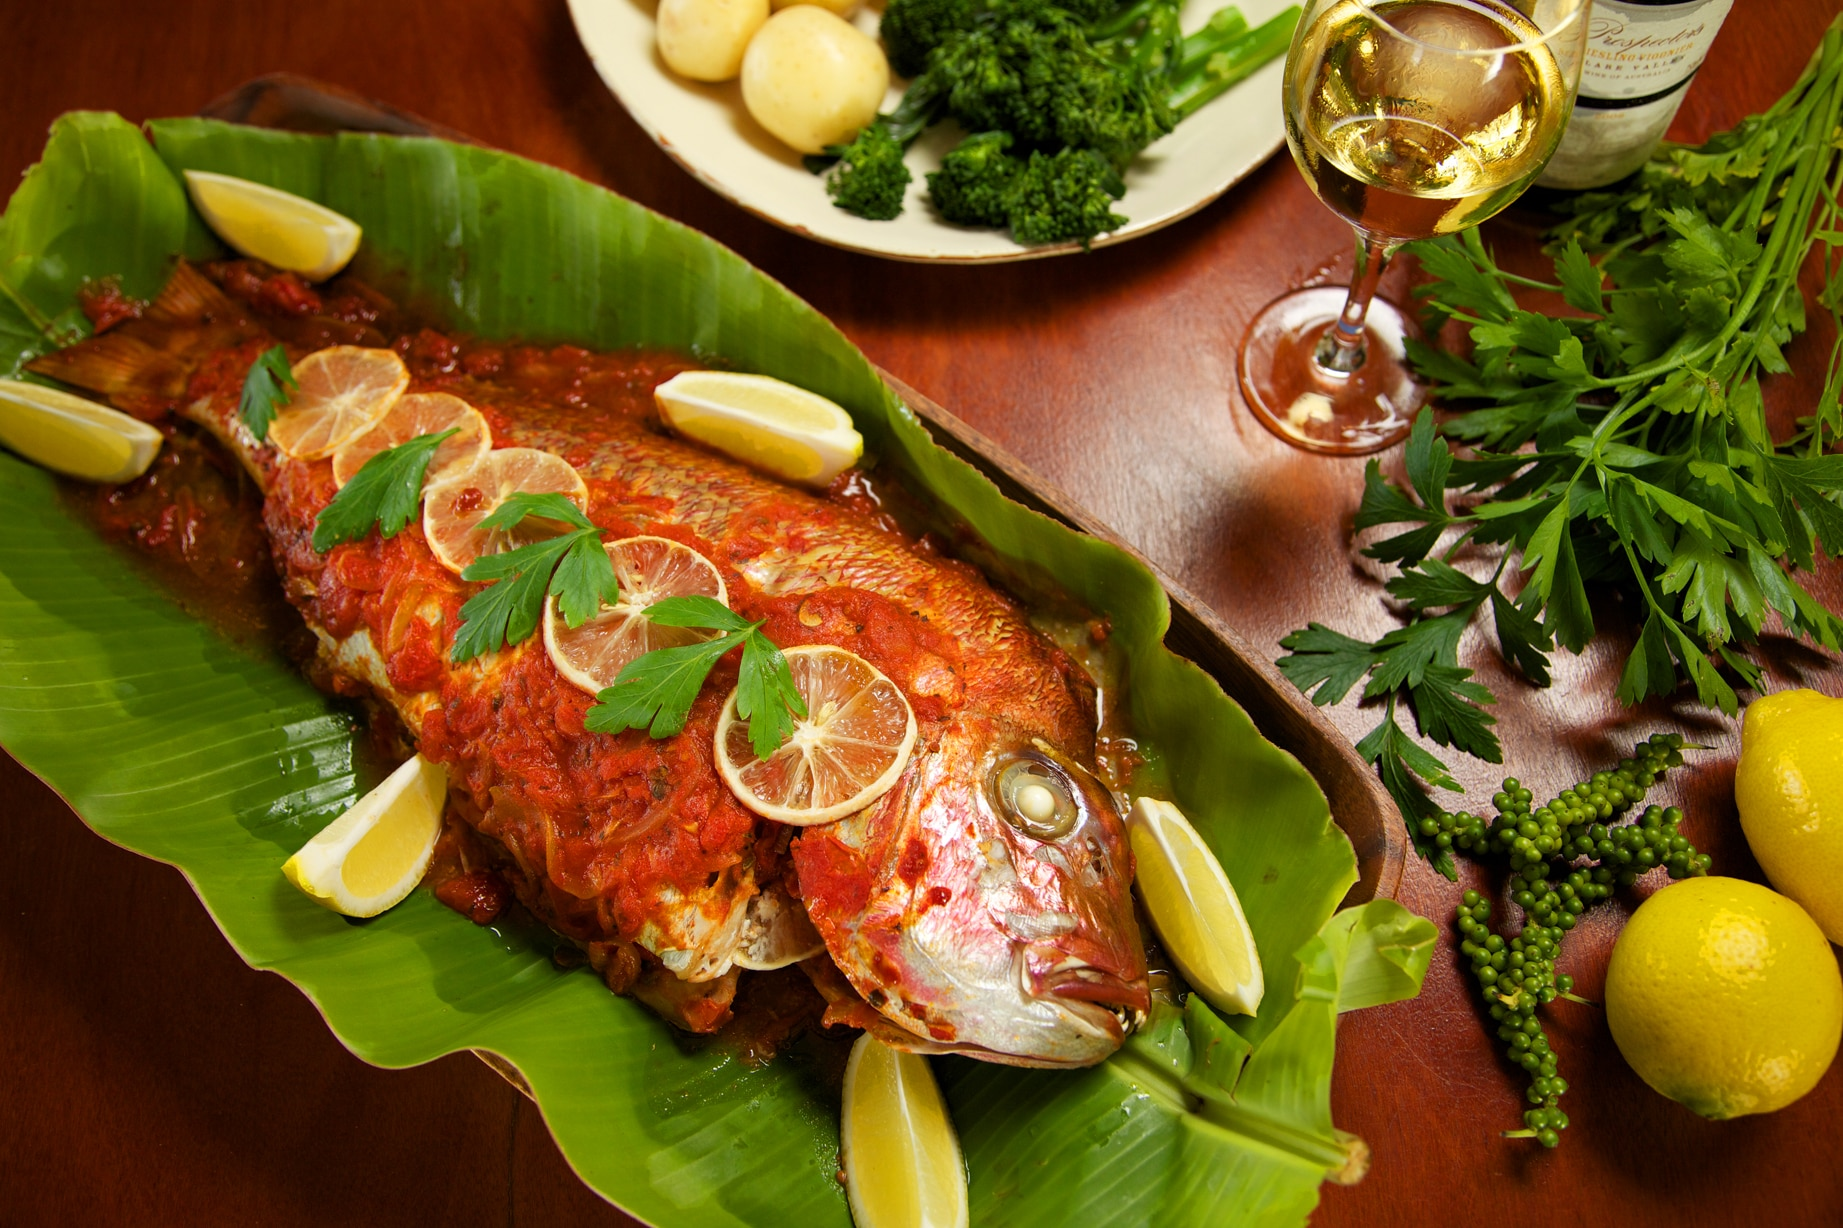 Baked fish pesce al forno recipe sbs food for How to make baked fish